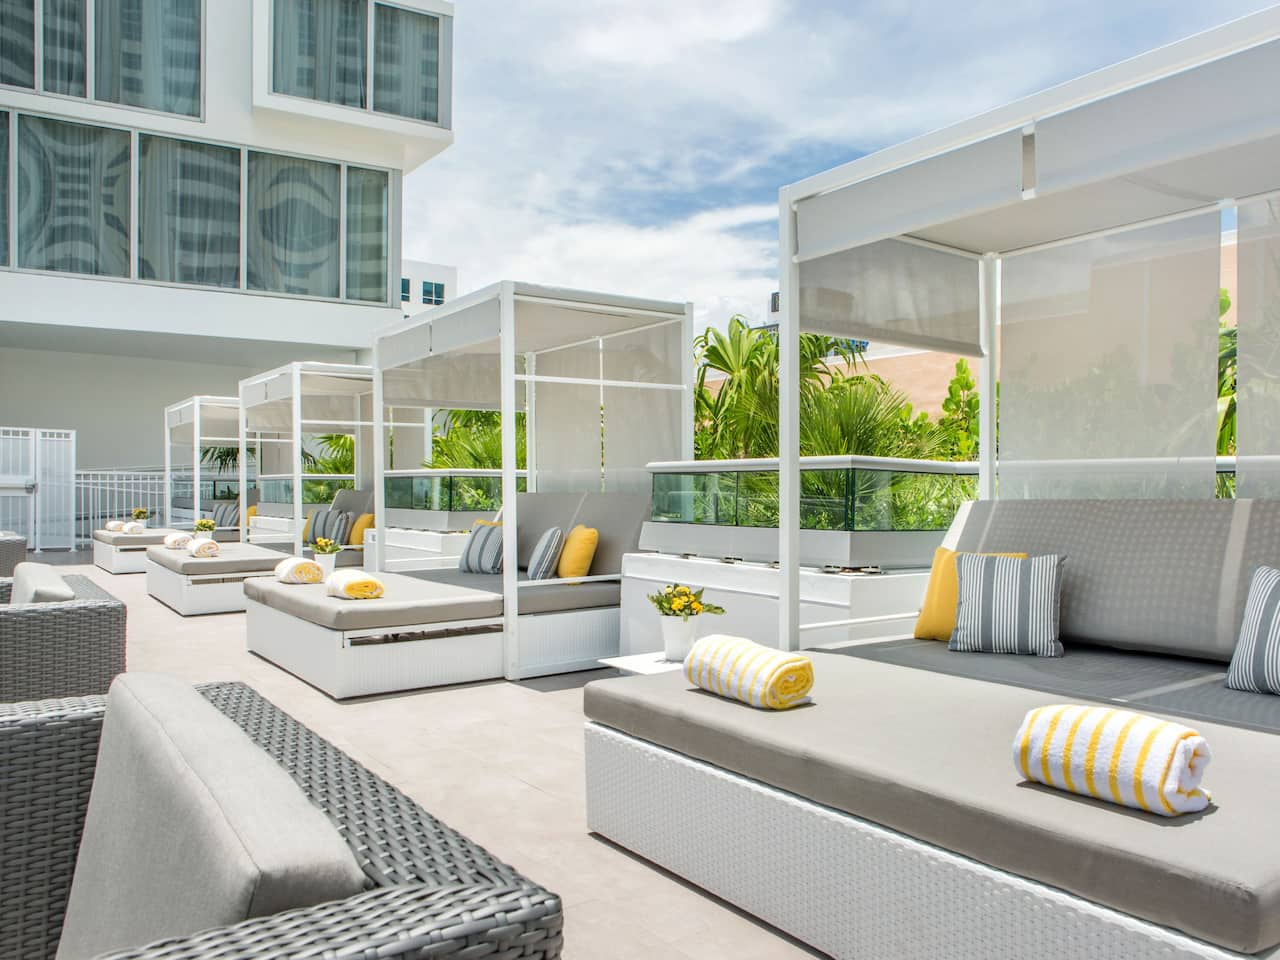 Rooftop Deck Pool Lounge